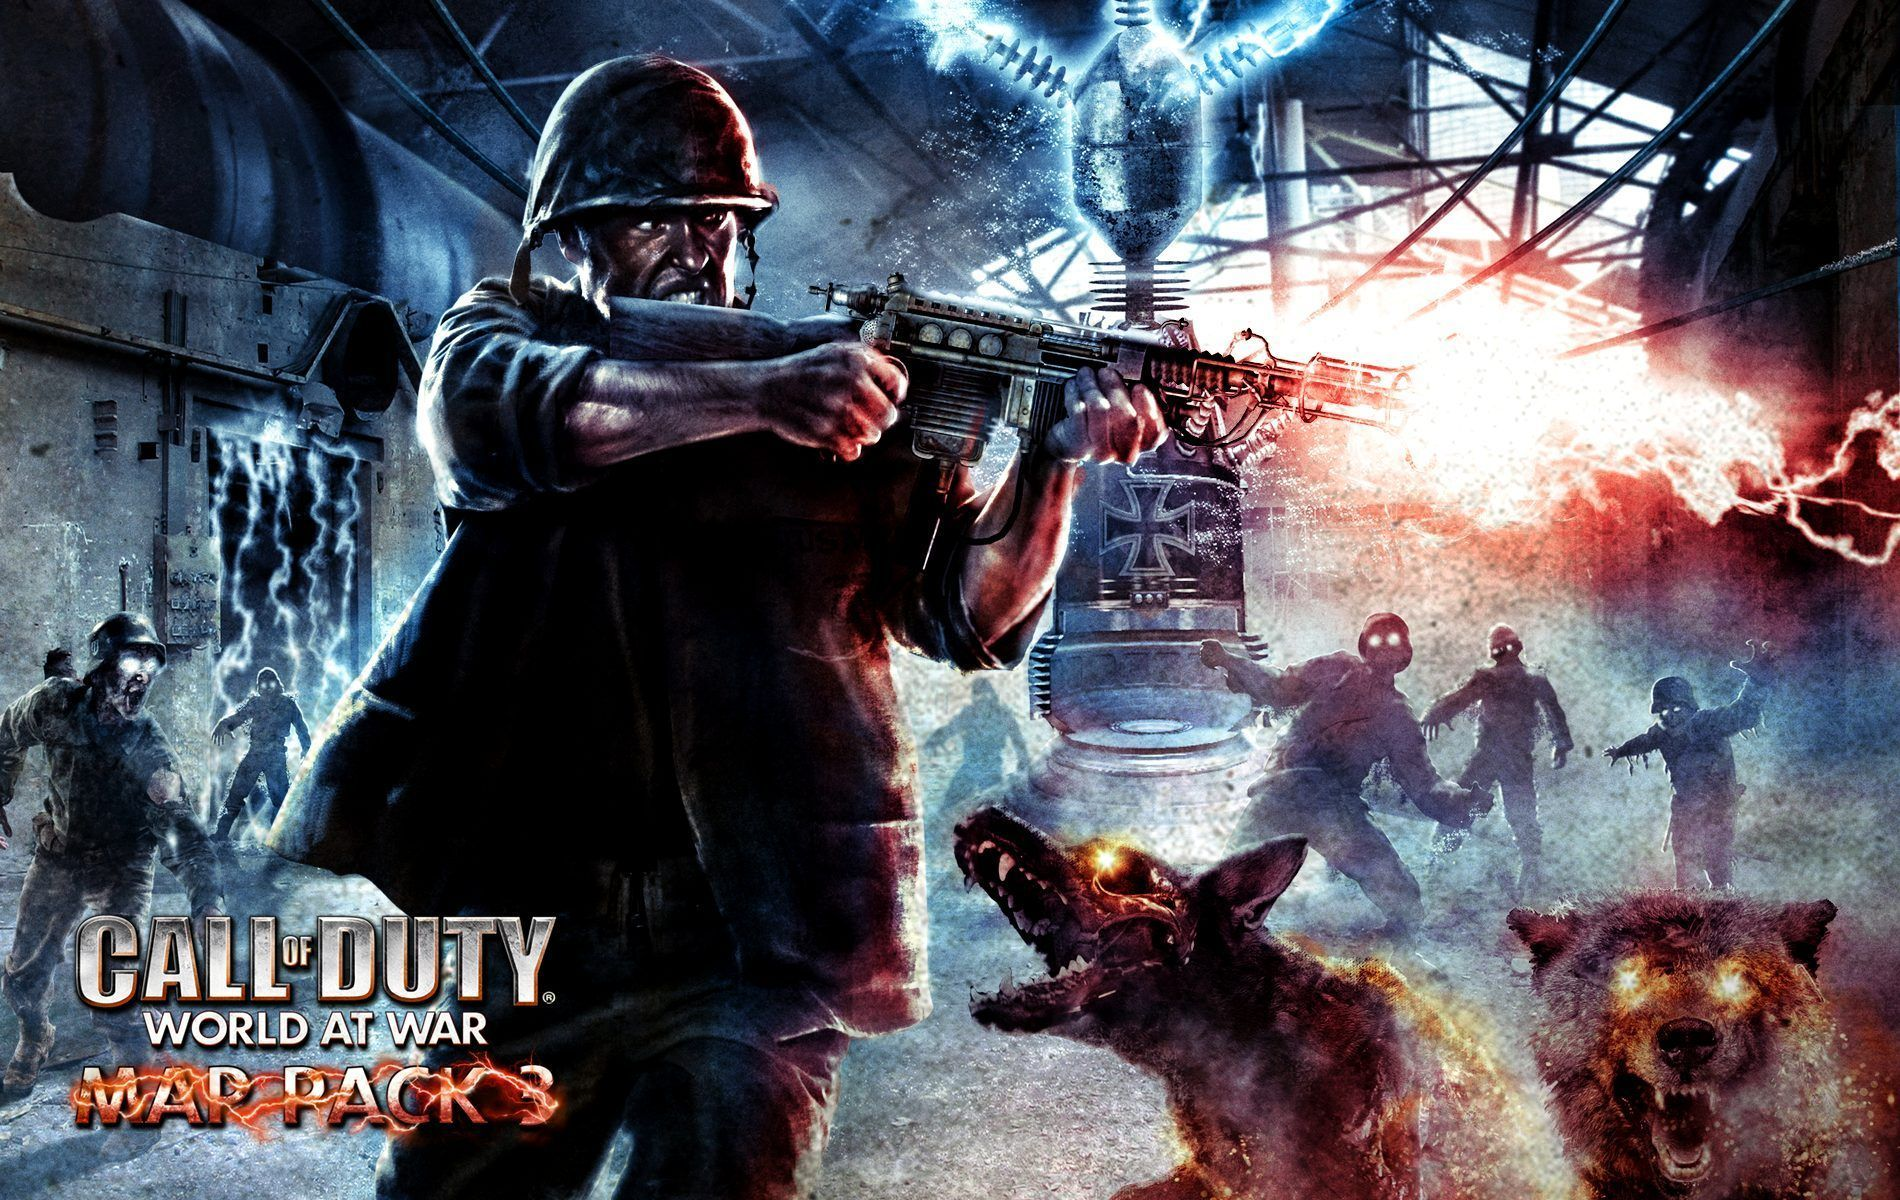 Cod Black Ops 3 Wallpaper Call Of Duty World At War Zombies 1900x1200 Wallpaper Teahub Io